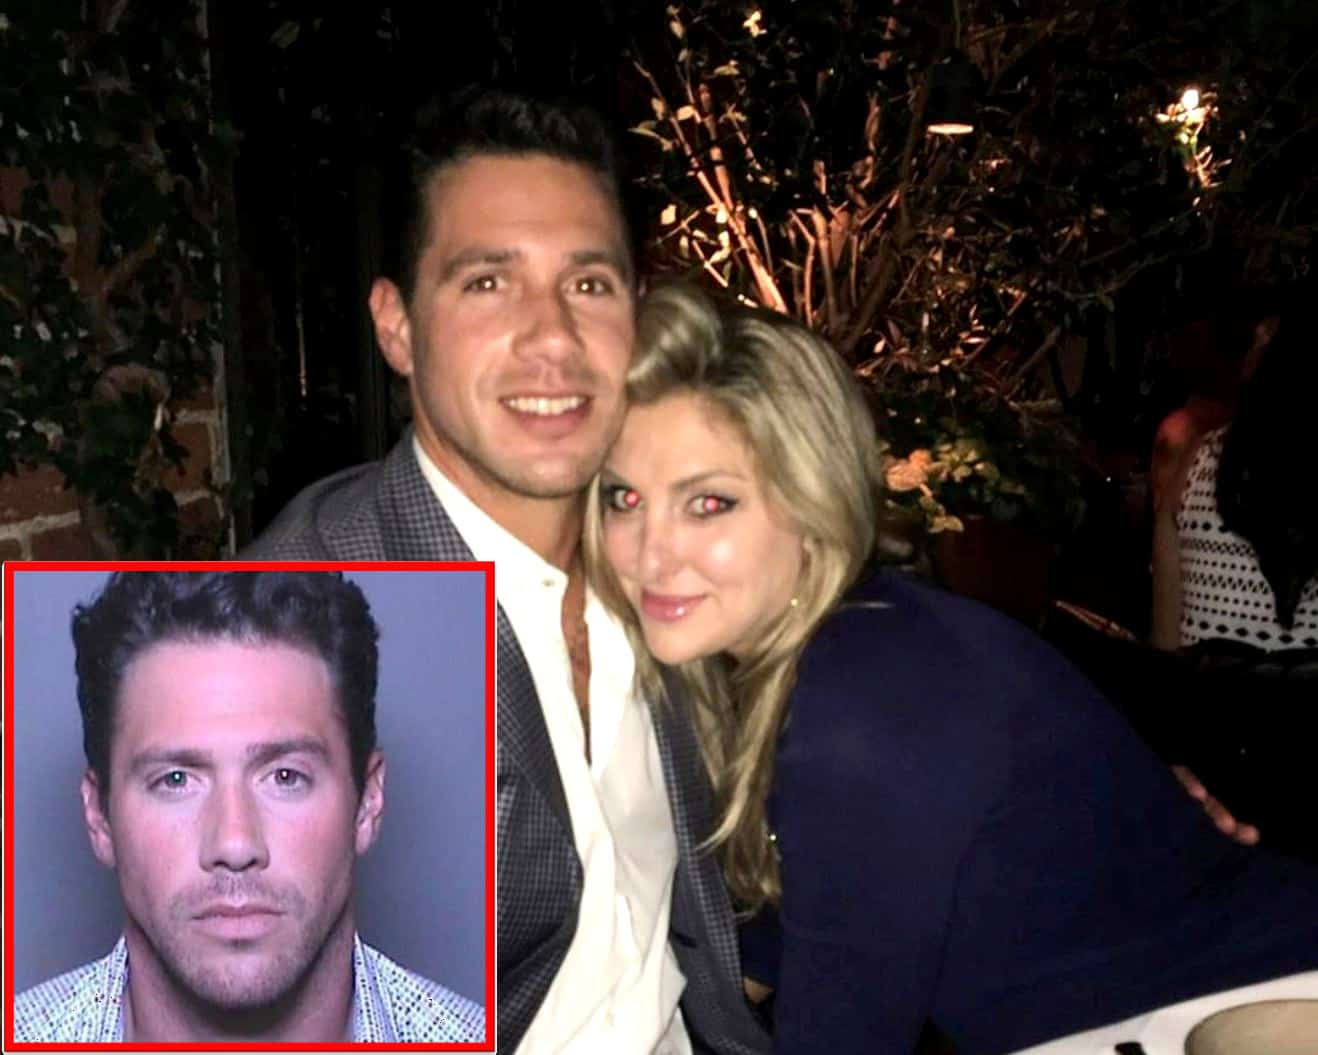 RHOC's Gina Kirschenheiter Claims Husband Matt Choked and Hit Her, Threatened to Kill Her During Assault, See the Shocking Allegations